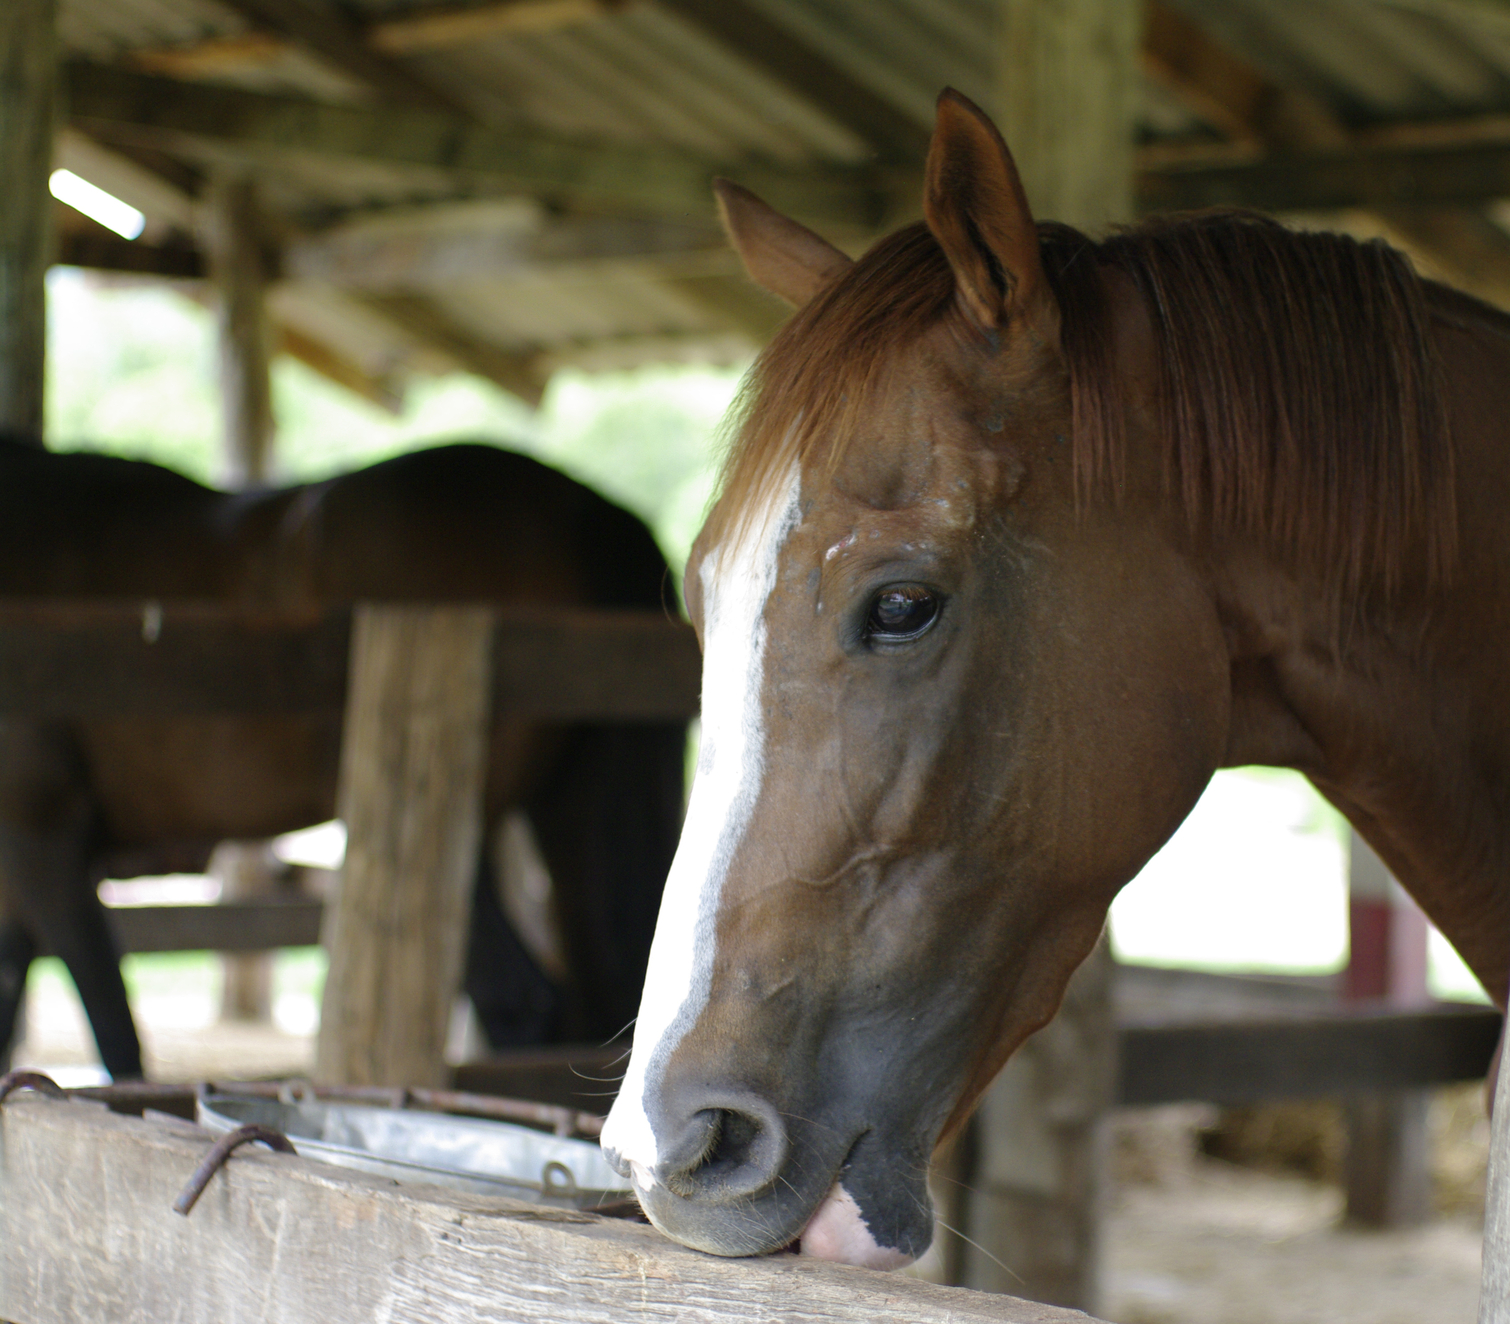 5 Things Wild Horses Can Teach Us About Horse Care